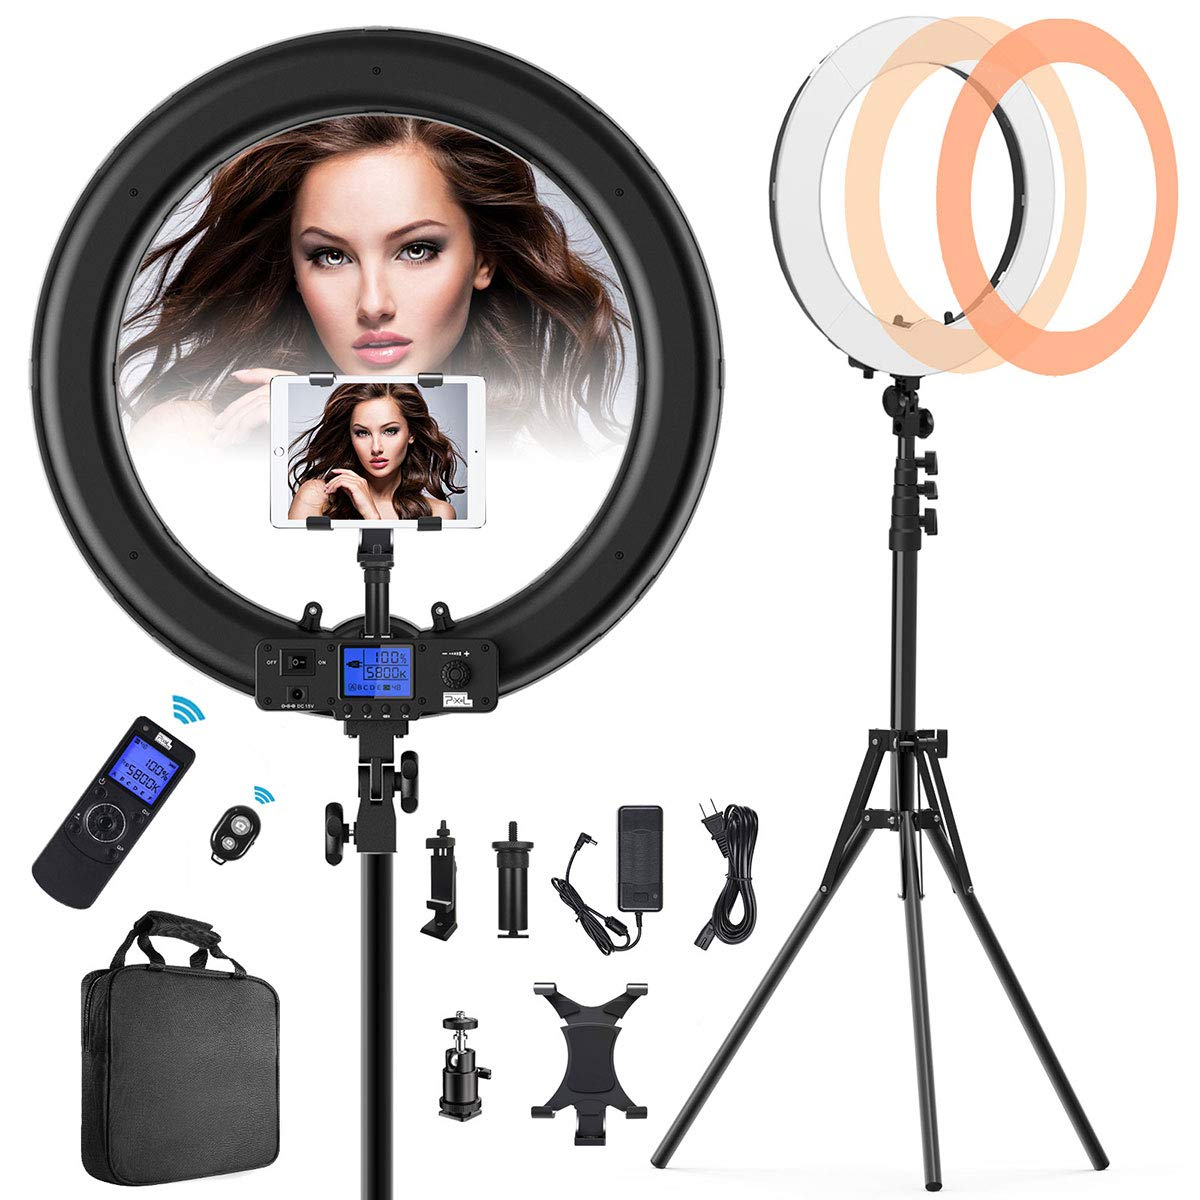 Ring Light with Wireless Remote and iPad Holder, Pixel 19'' Bi-Color LCD Display Ring Light with Stand and Selfie Remote, 55W 3000-5800K CRI≥97 Light Ring for Vlogging Portrait Makeup Video Shooting